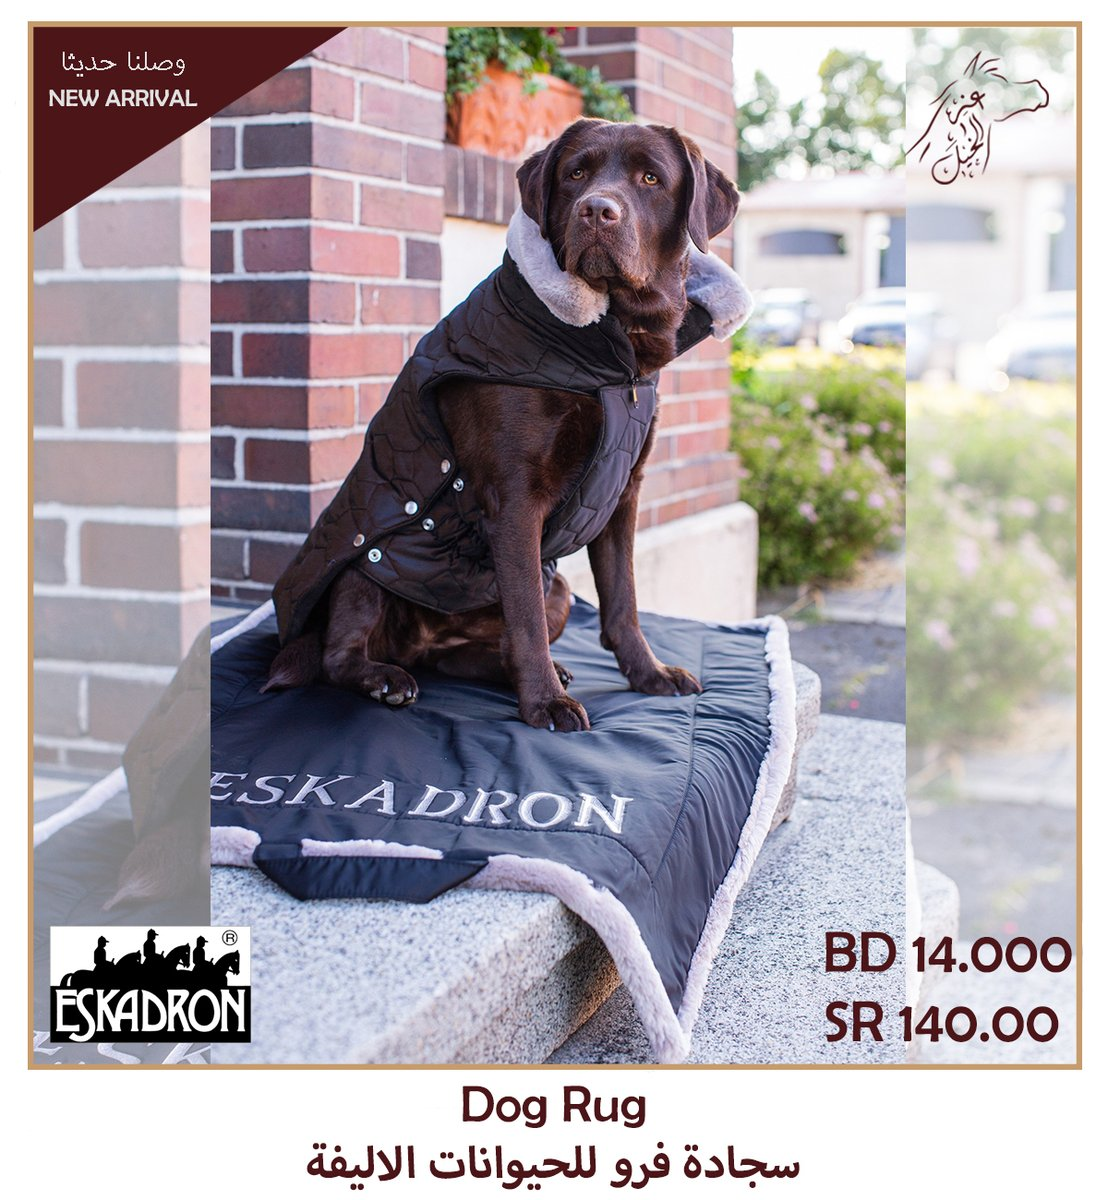 Eskadron Dug Rug is now available at our branch and on http://www.horsepride.compic.twitter.com/W52Sf1mTRE